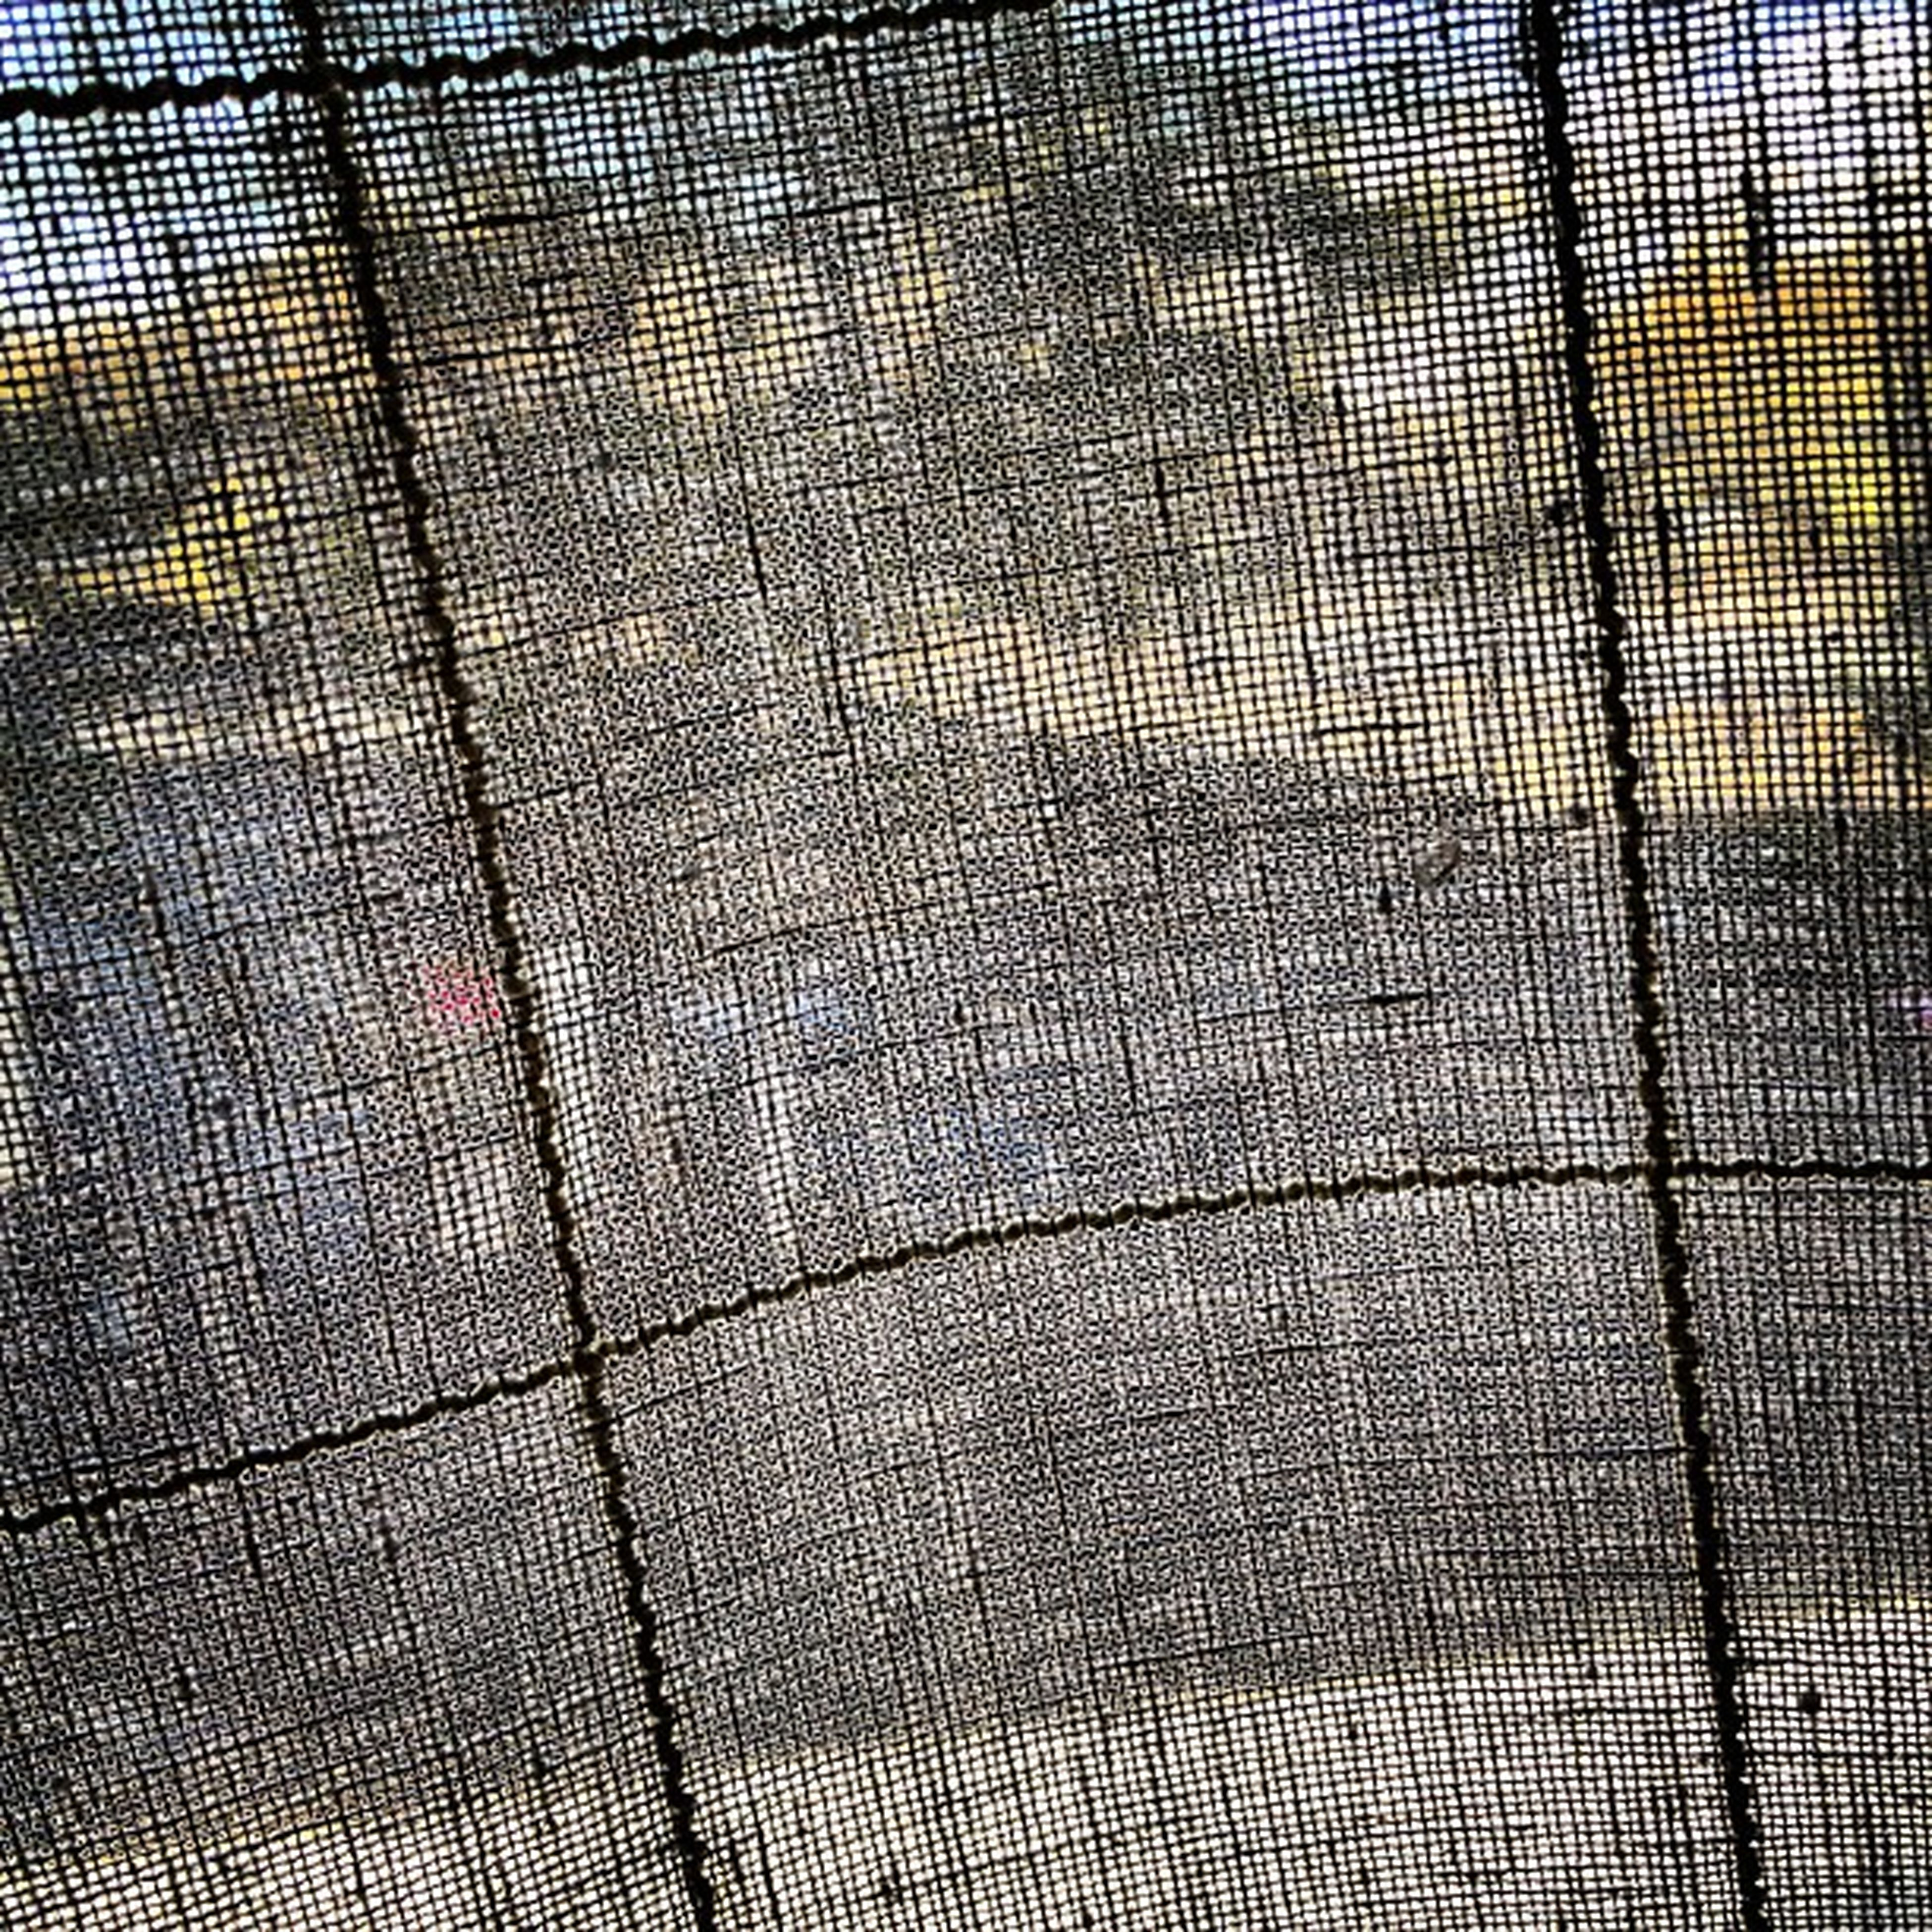 full frame, backgrounds, pattern, indoors, textured, design, close-up, textile, fabric, detail, no people, metal, day, abstract, protection, chainlink fence, repetition, window, wall - building feature